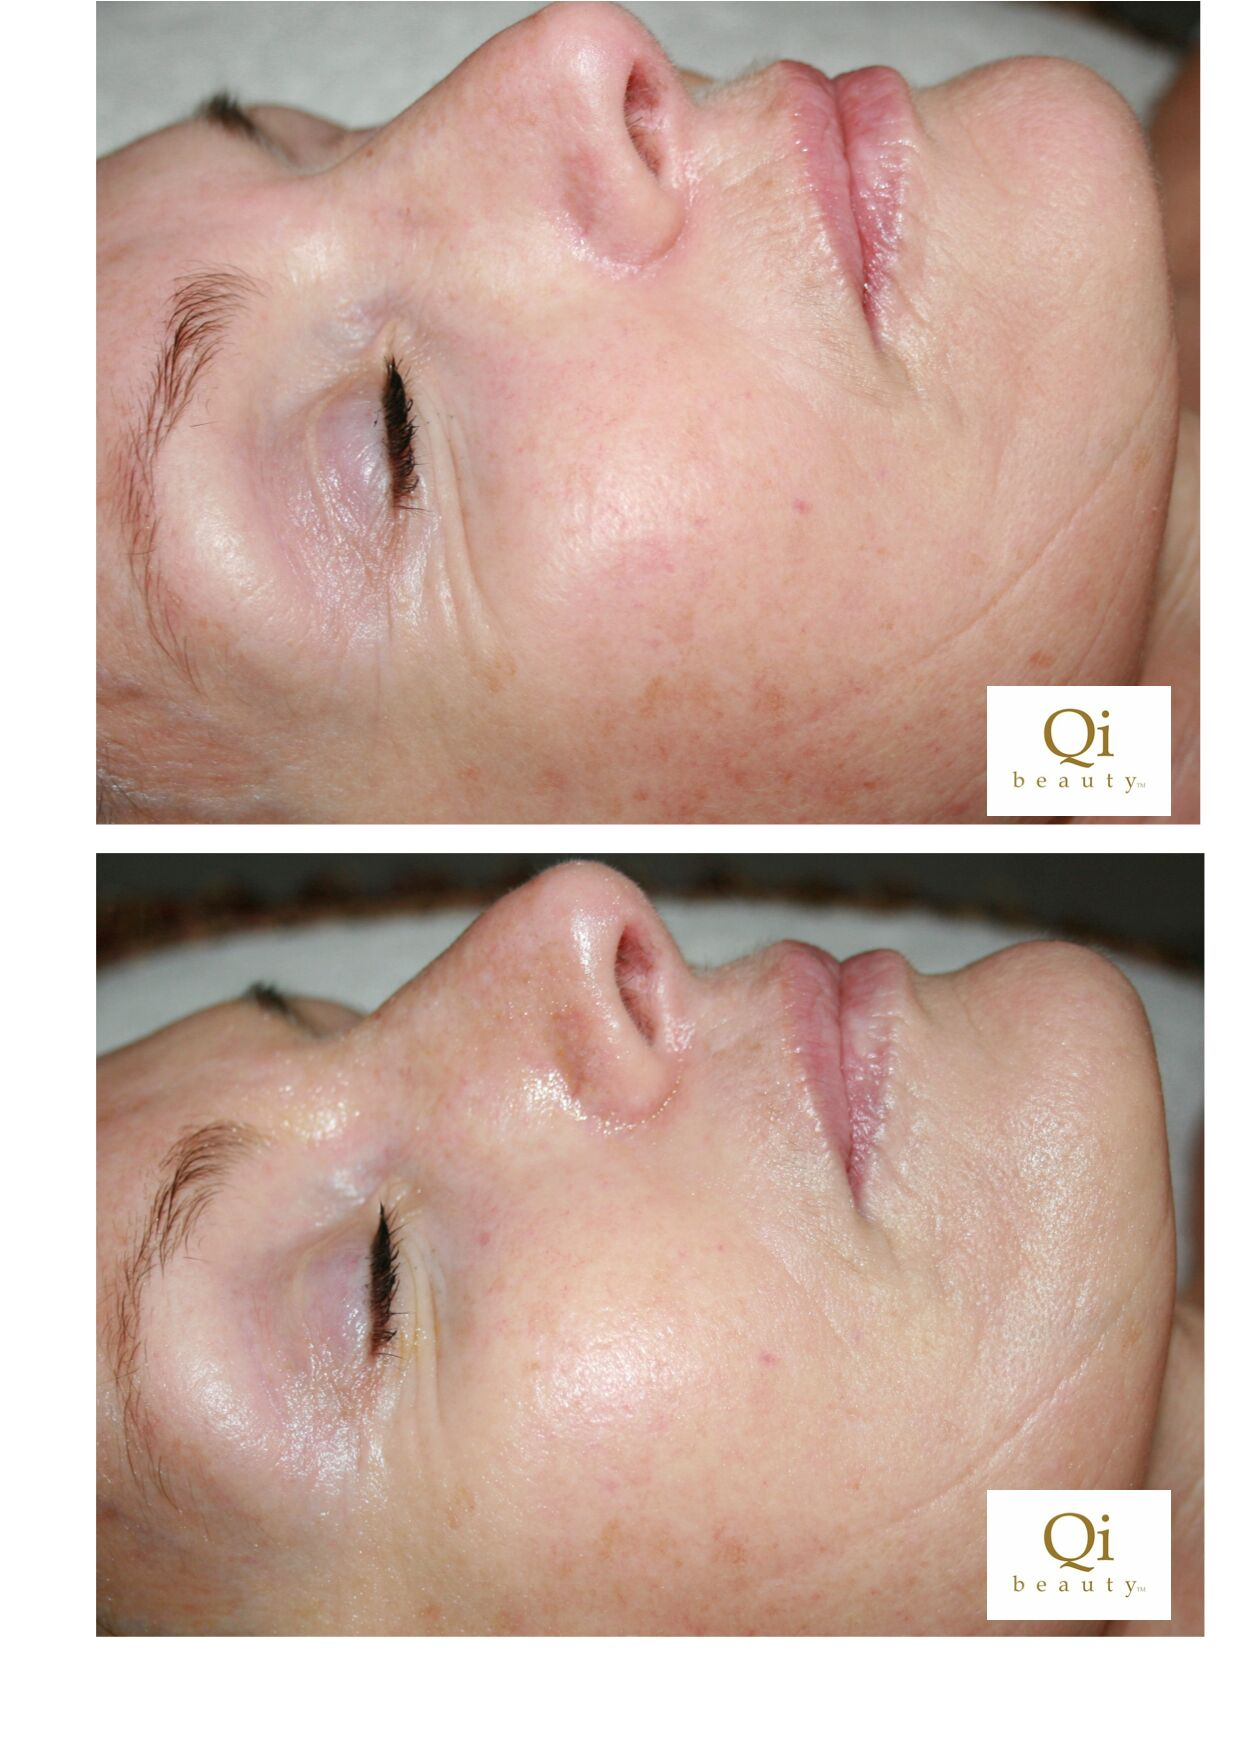 Qi beauty Treatments assist reducing skin redness, skin inflammation, smoothing skin, and bringing volume into areas. Qi beauty detoxifies skin giving it a clear, natural glow.